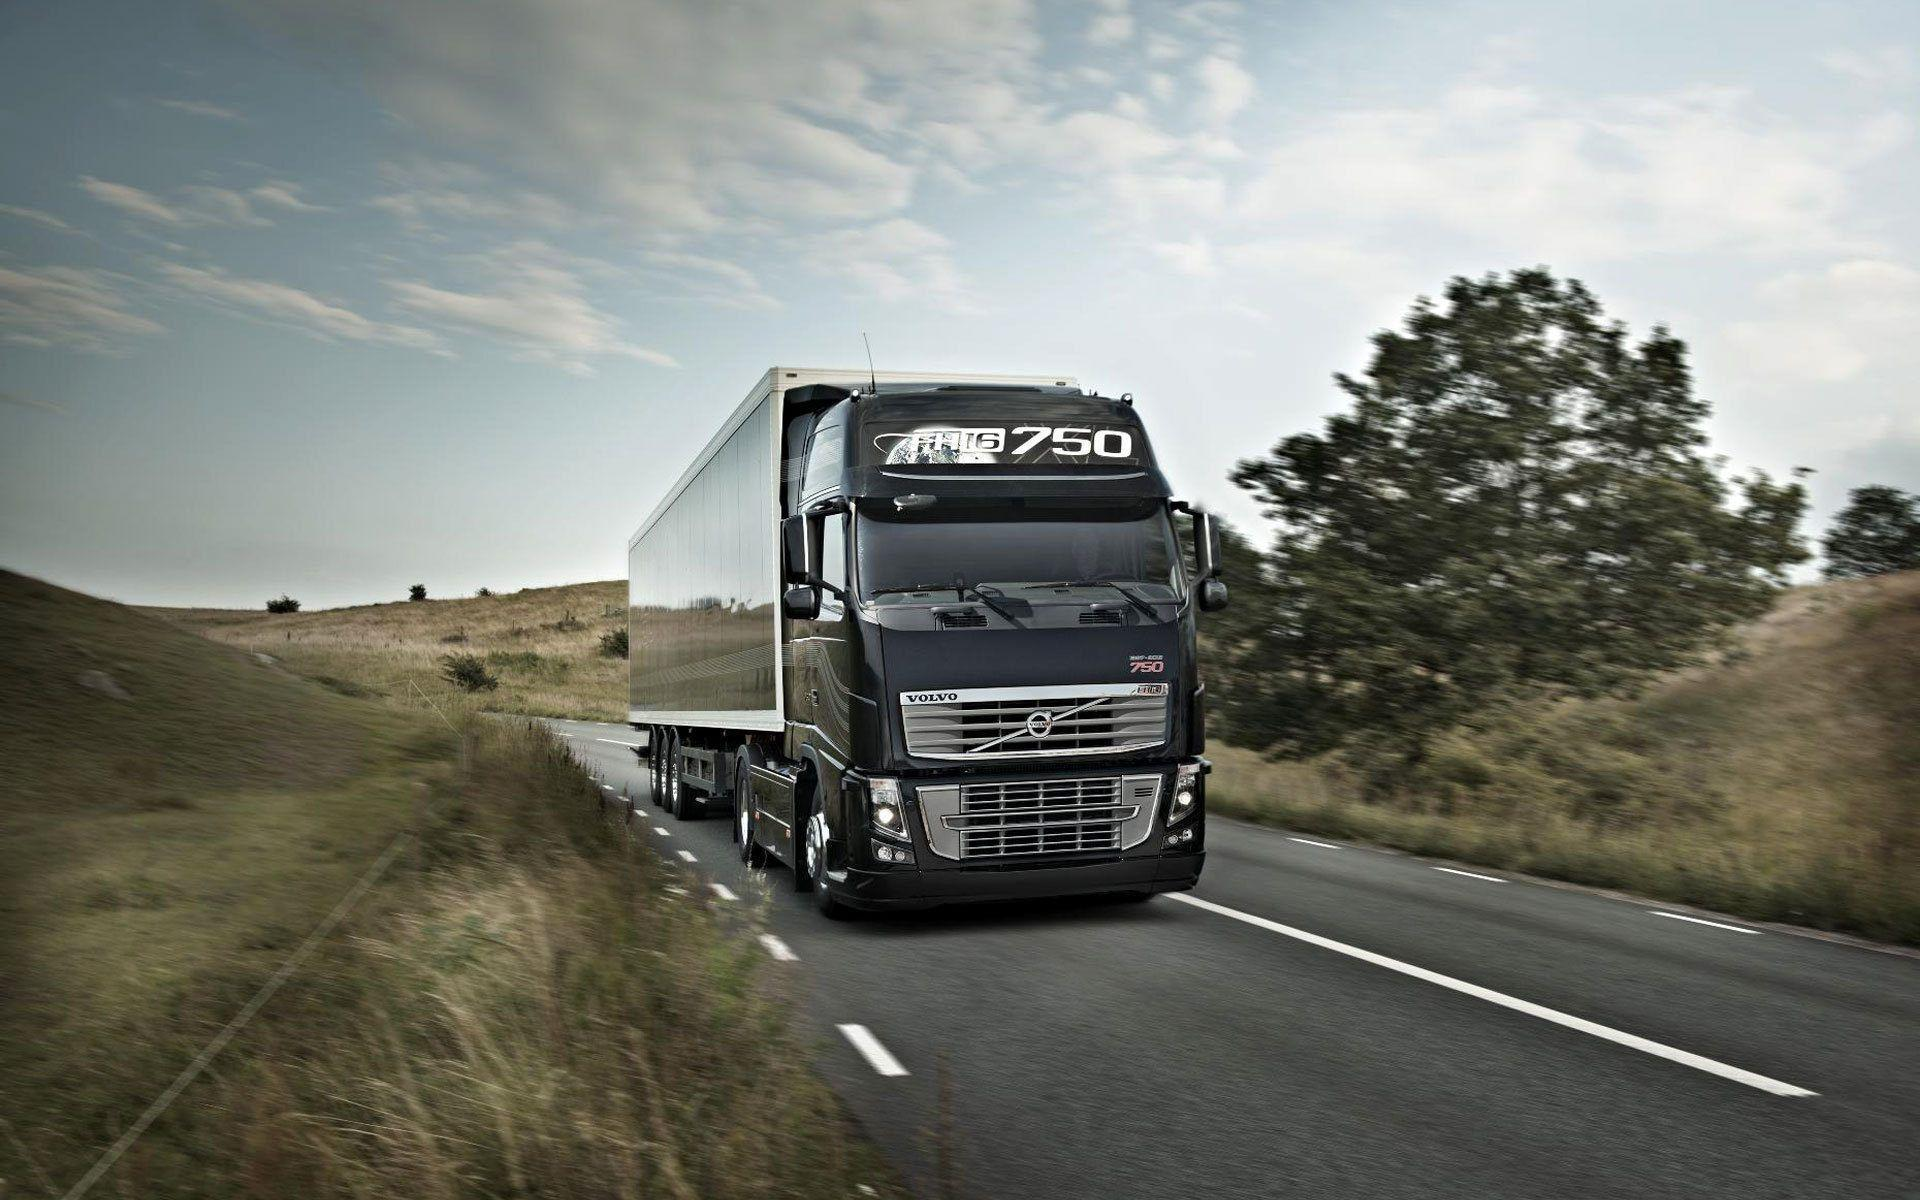 Volvo FH16 Truck Wallpapers HD Download Of Volvo Truck